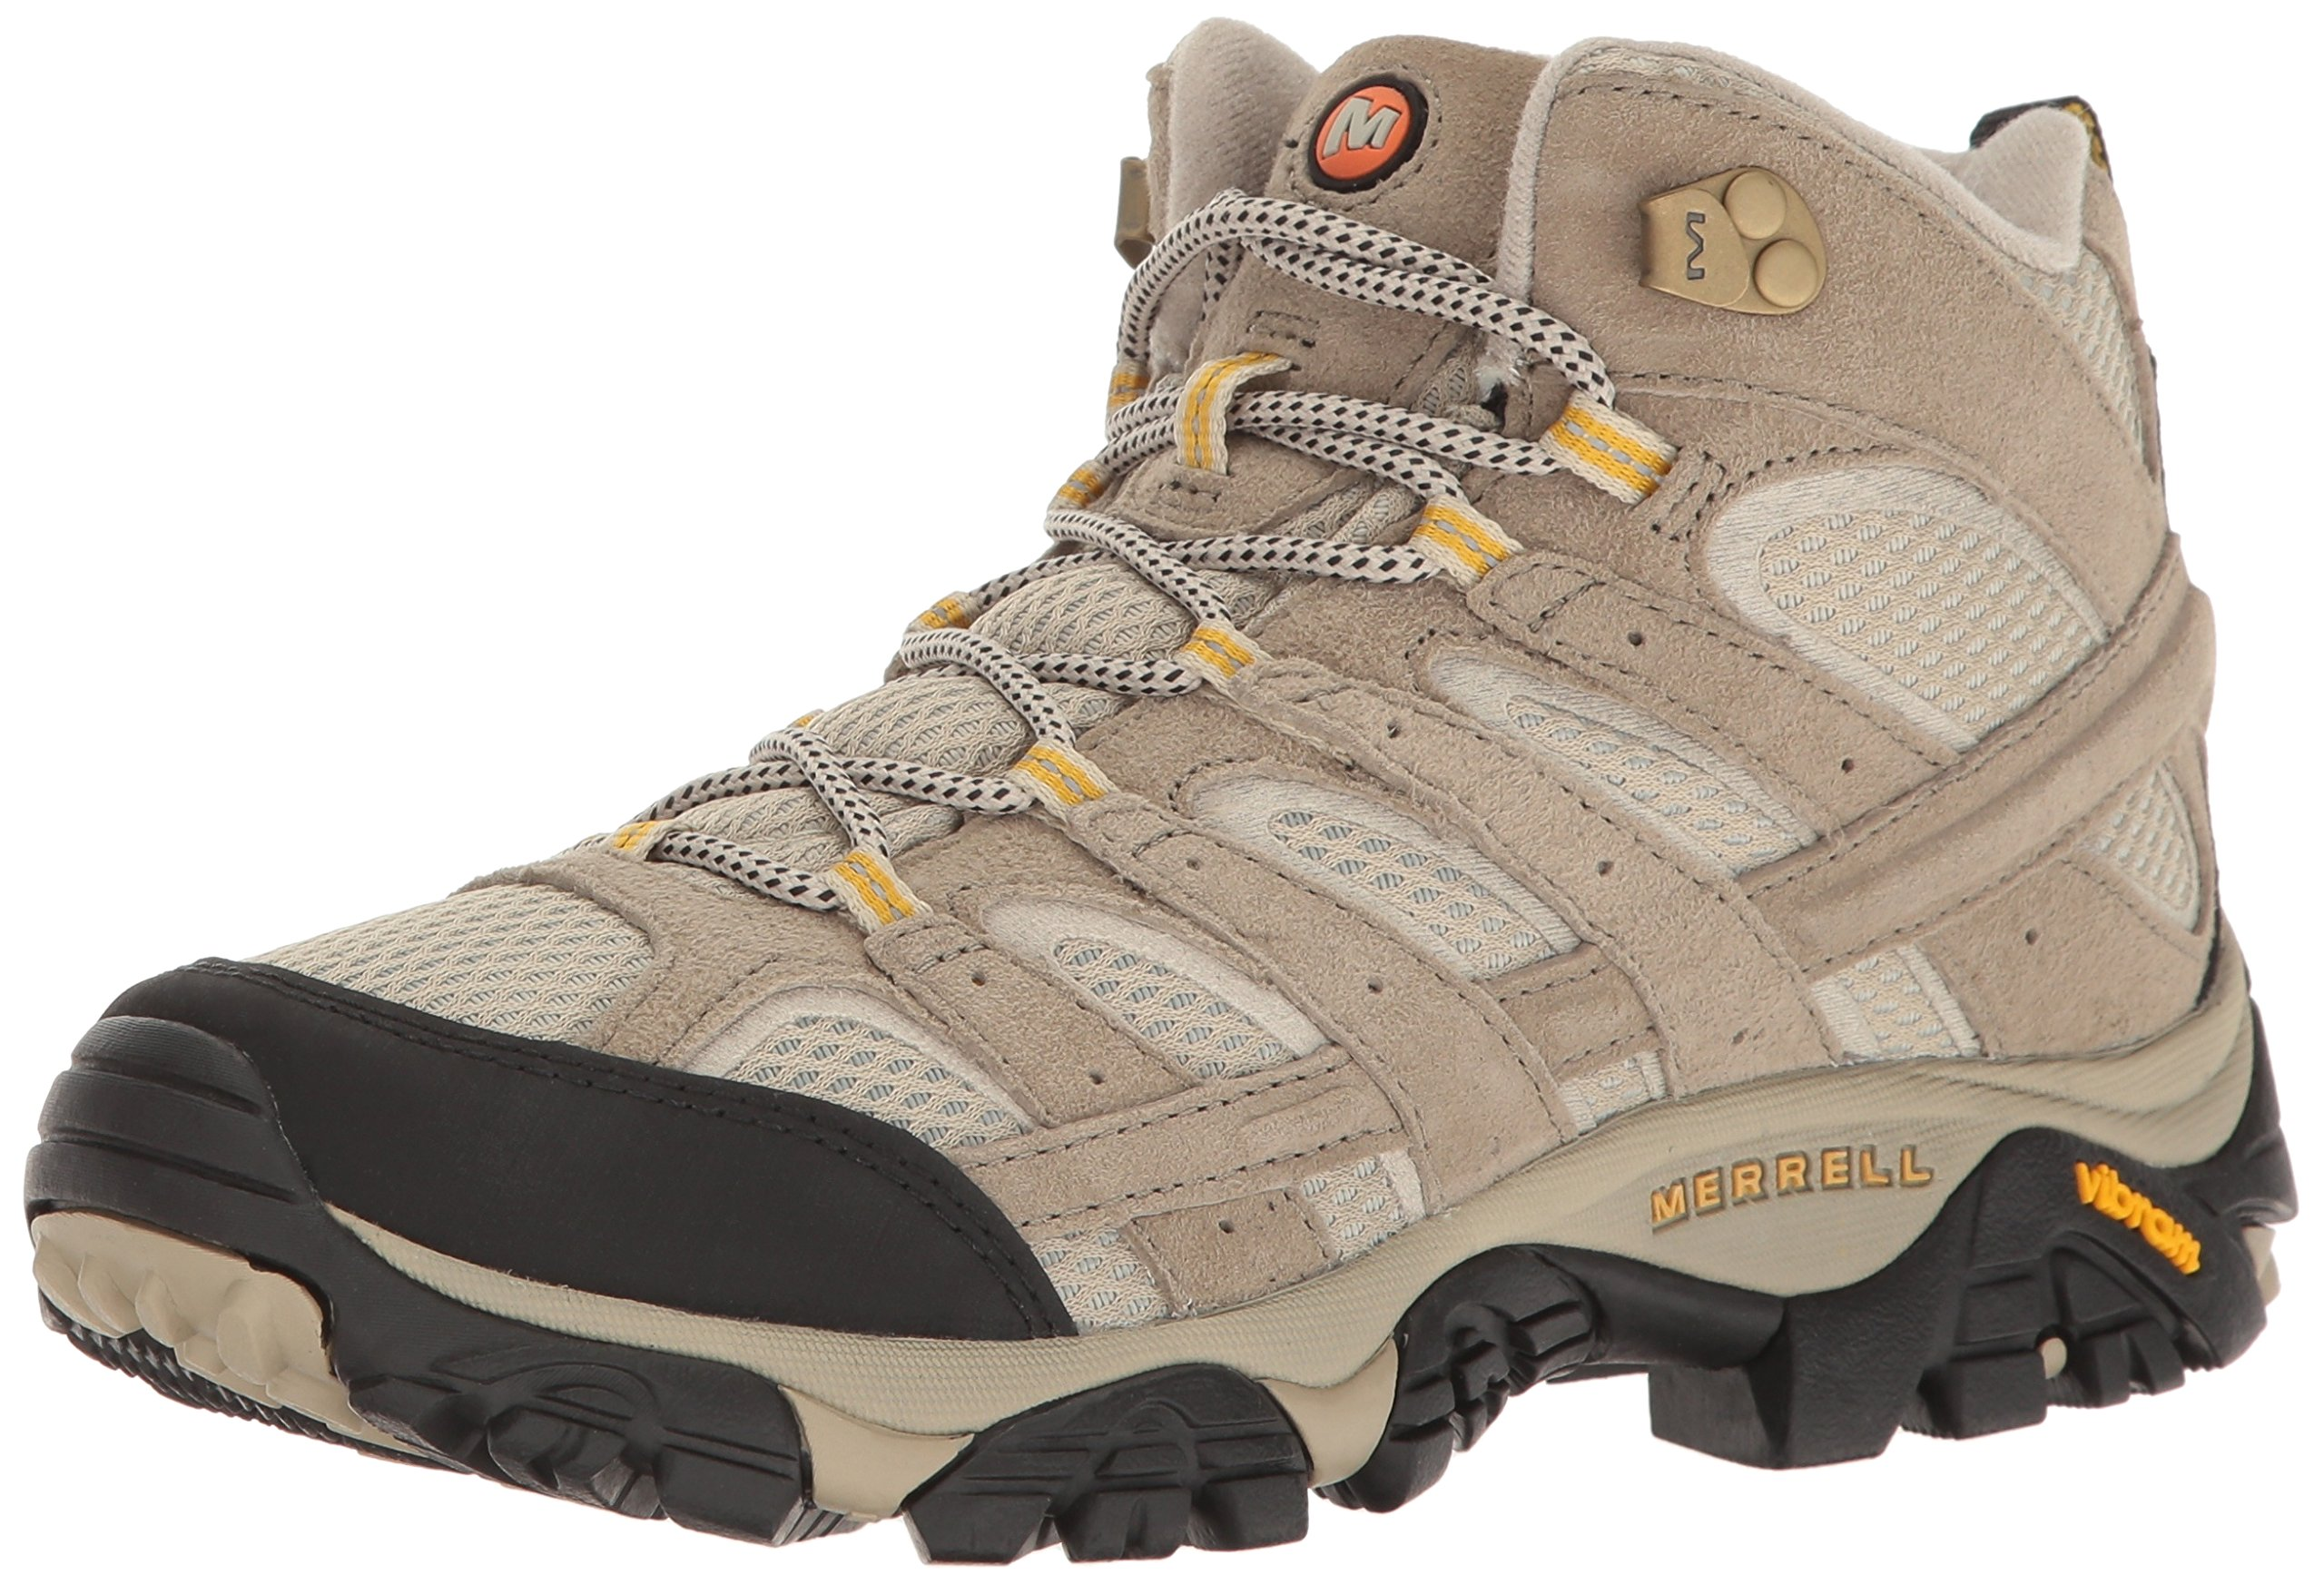 Merrell Women's Moab 2 Vent Mid, Taupe, 6.5 M